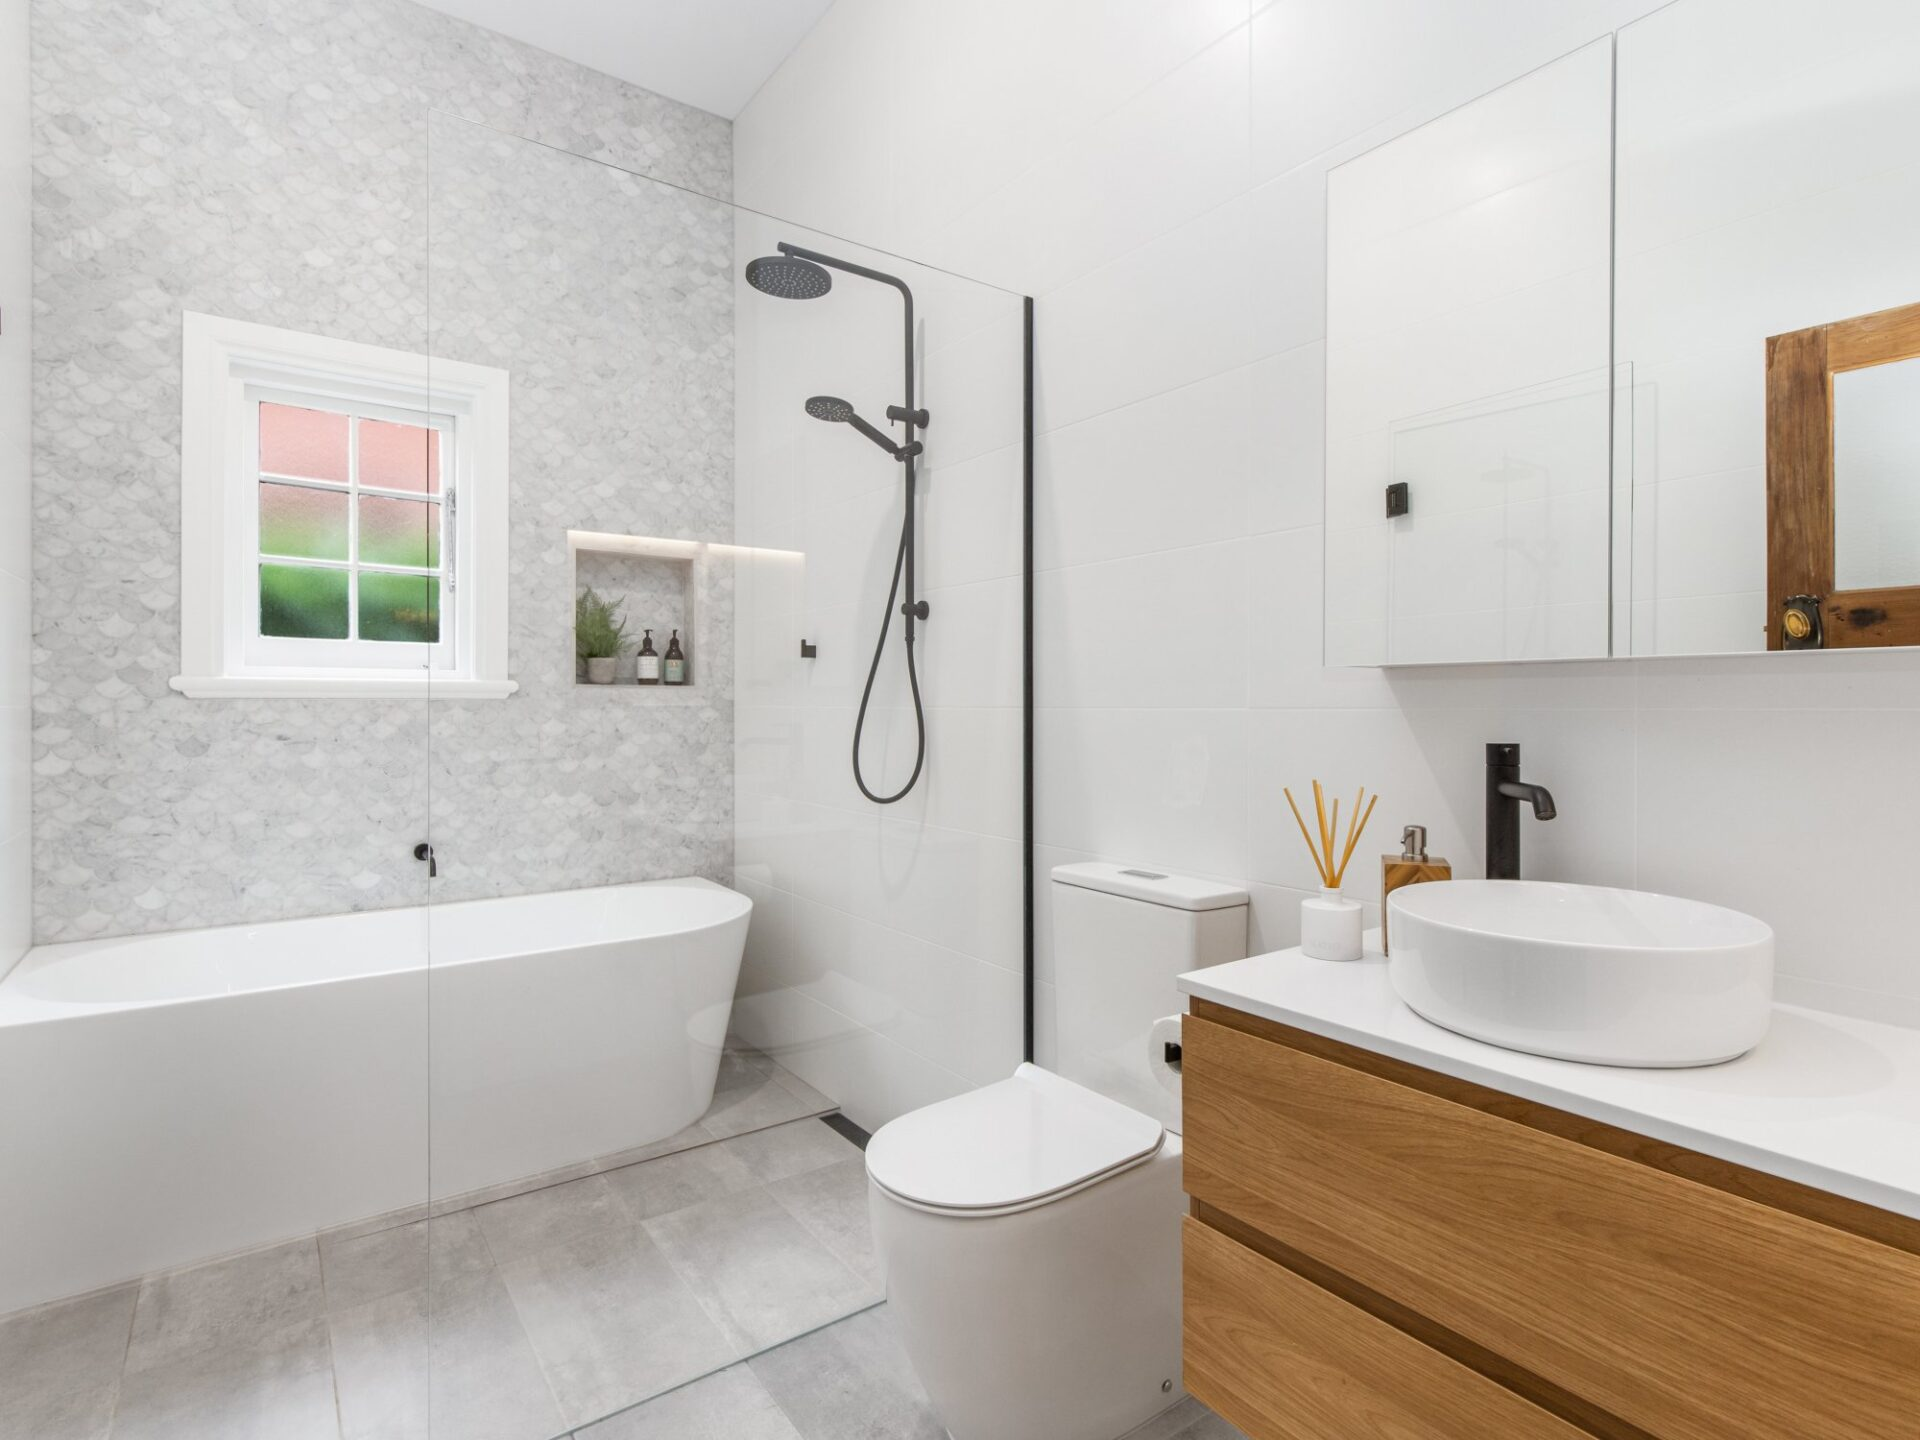 Bathroom Renovations Services - Bayview Renovations